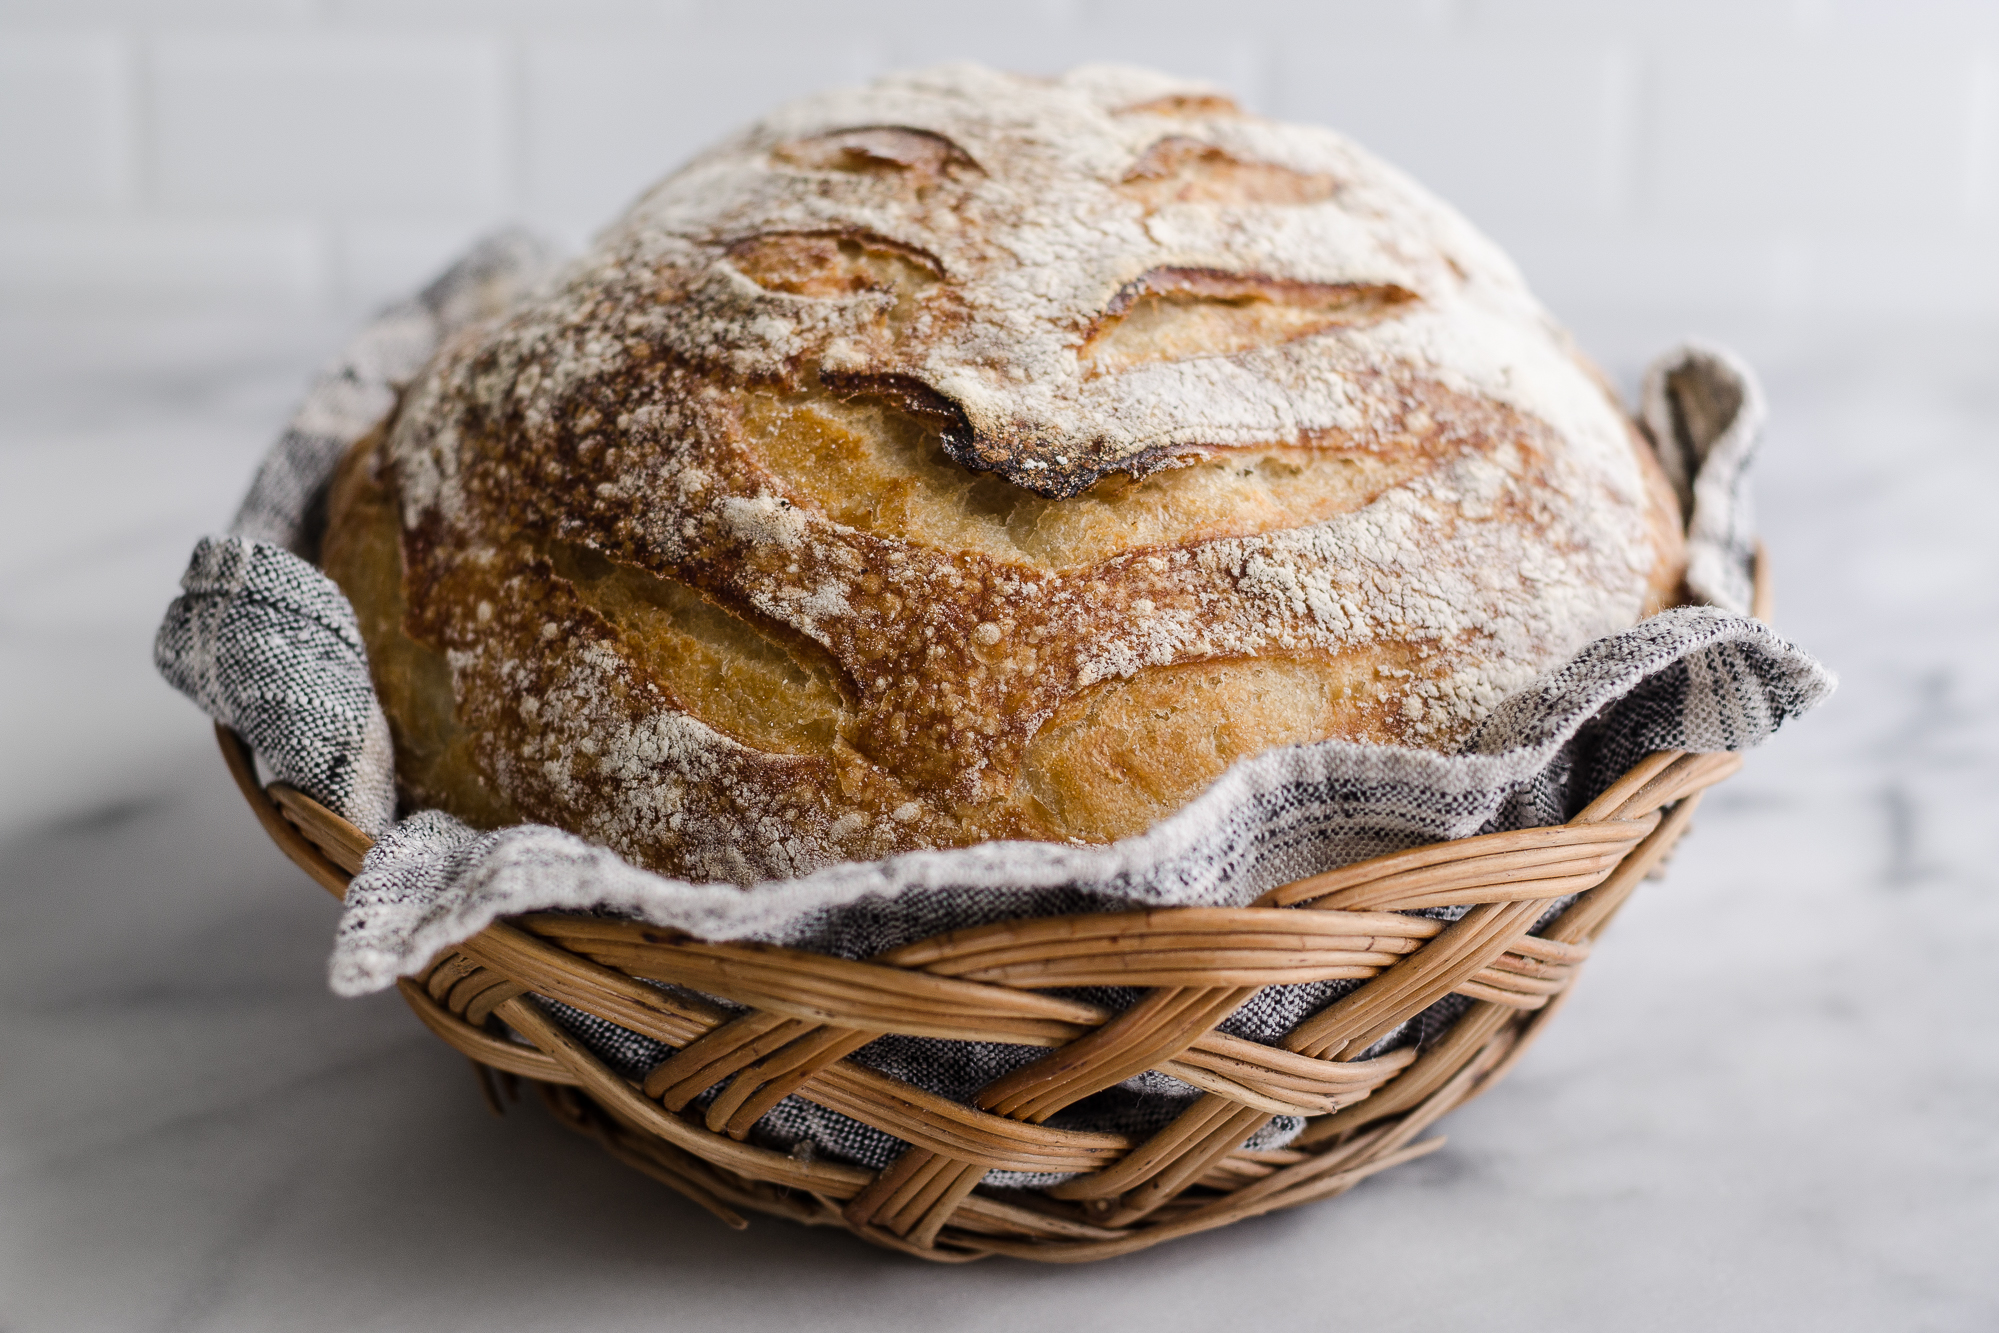 how-to-make-artisan-sourdough-bread-at-home-01.jpg